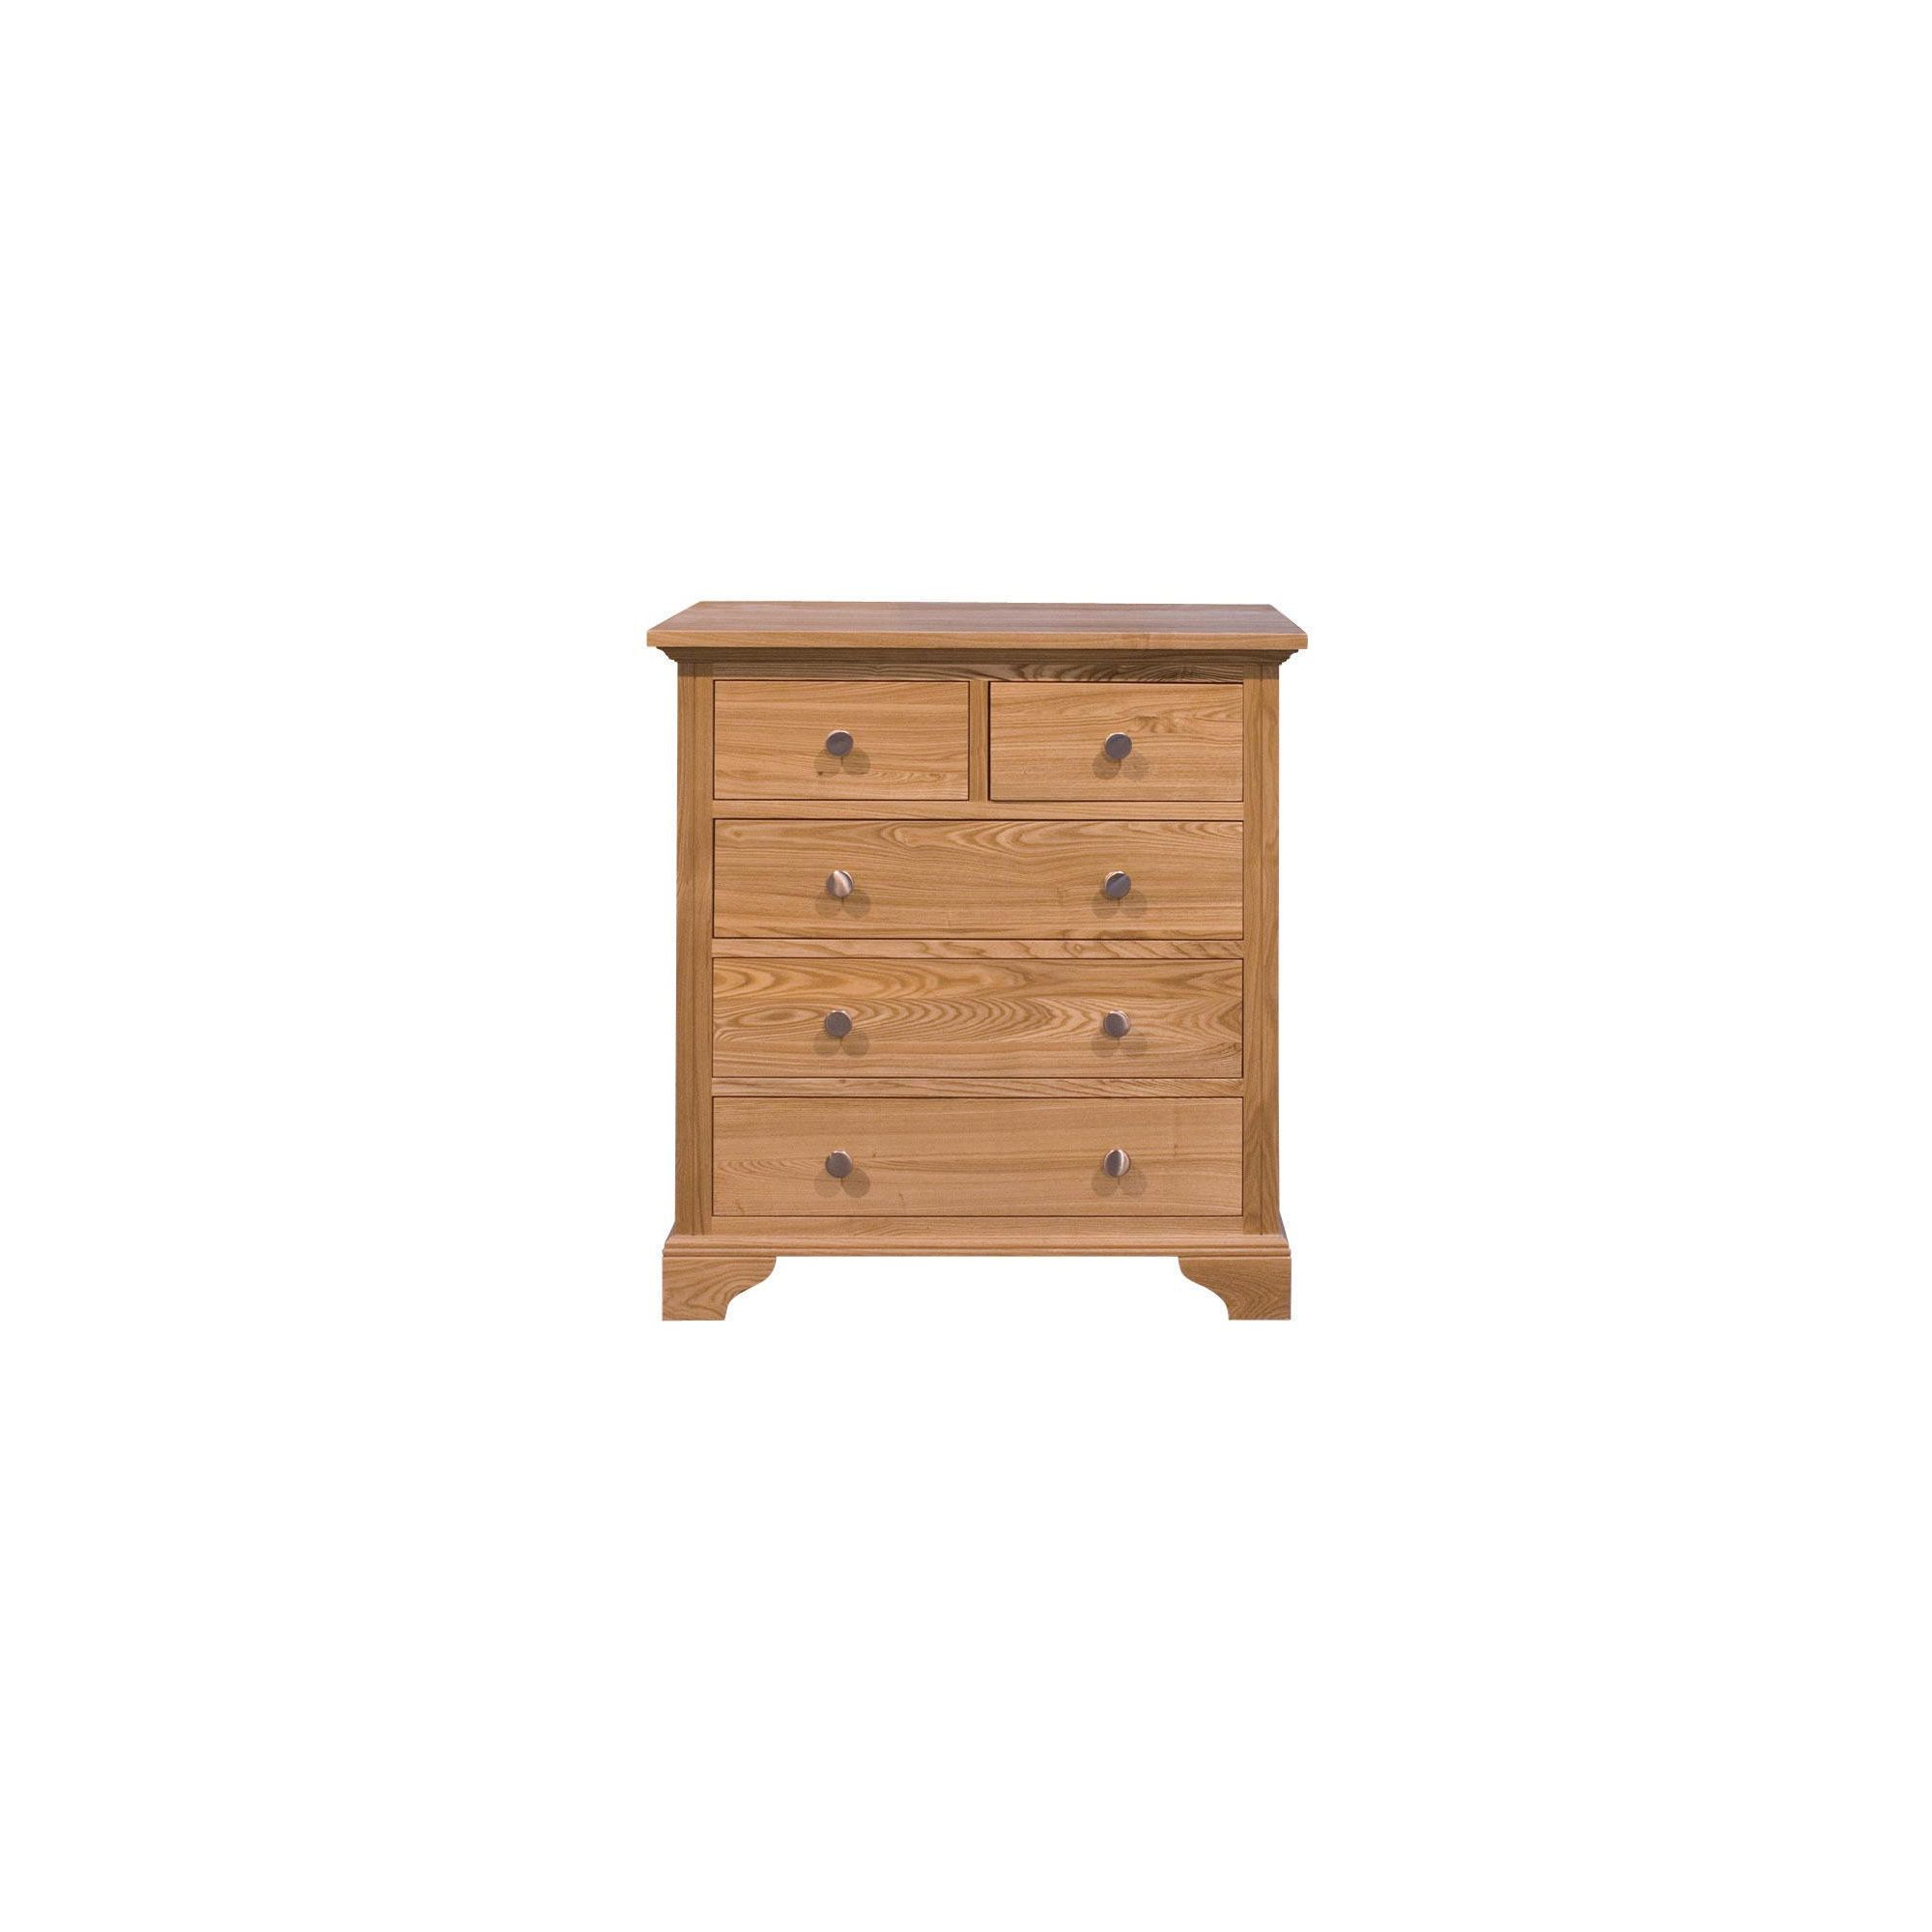 Alterton Furniture New England 2 over 3 Drawers Chest at Tesco Direct